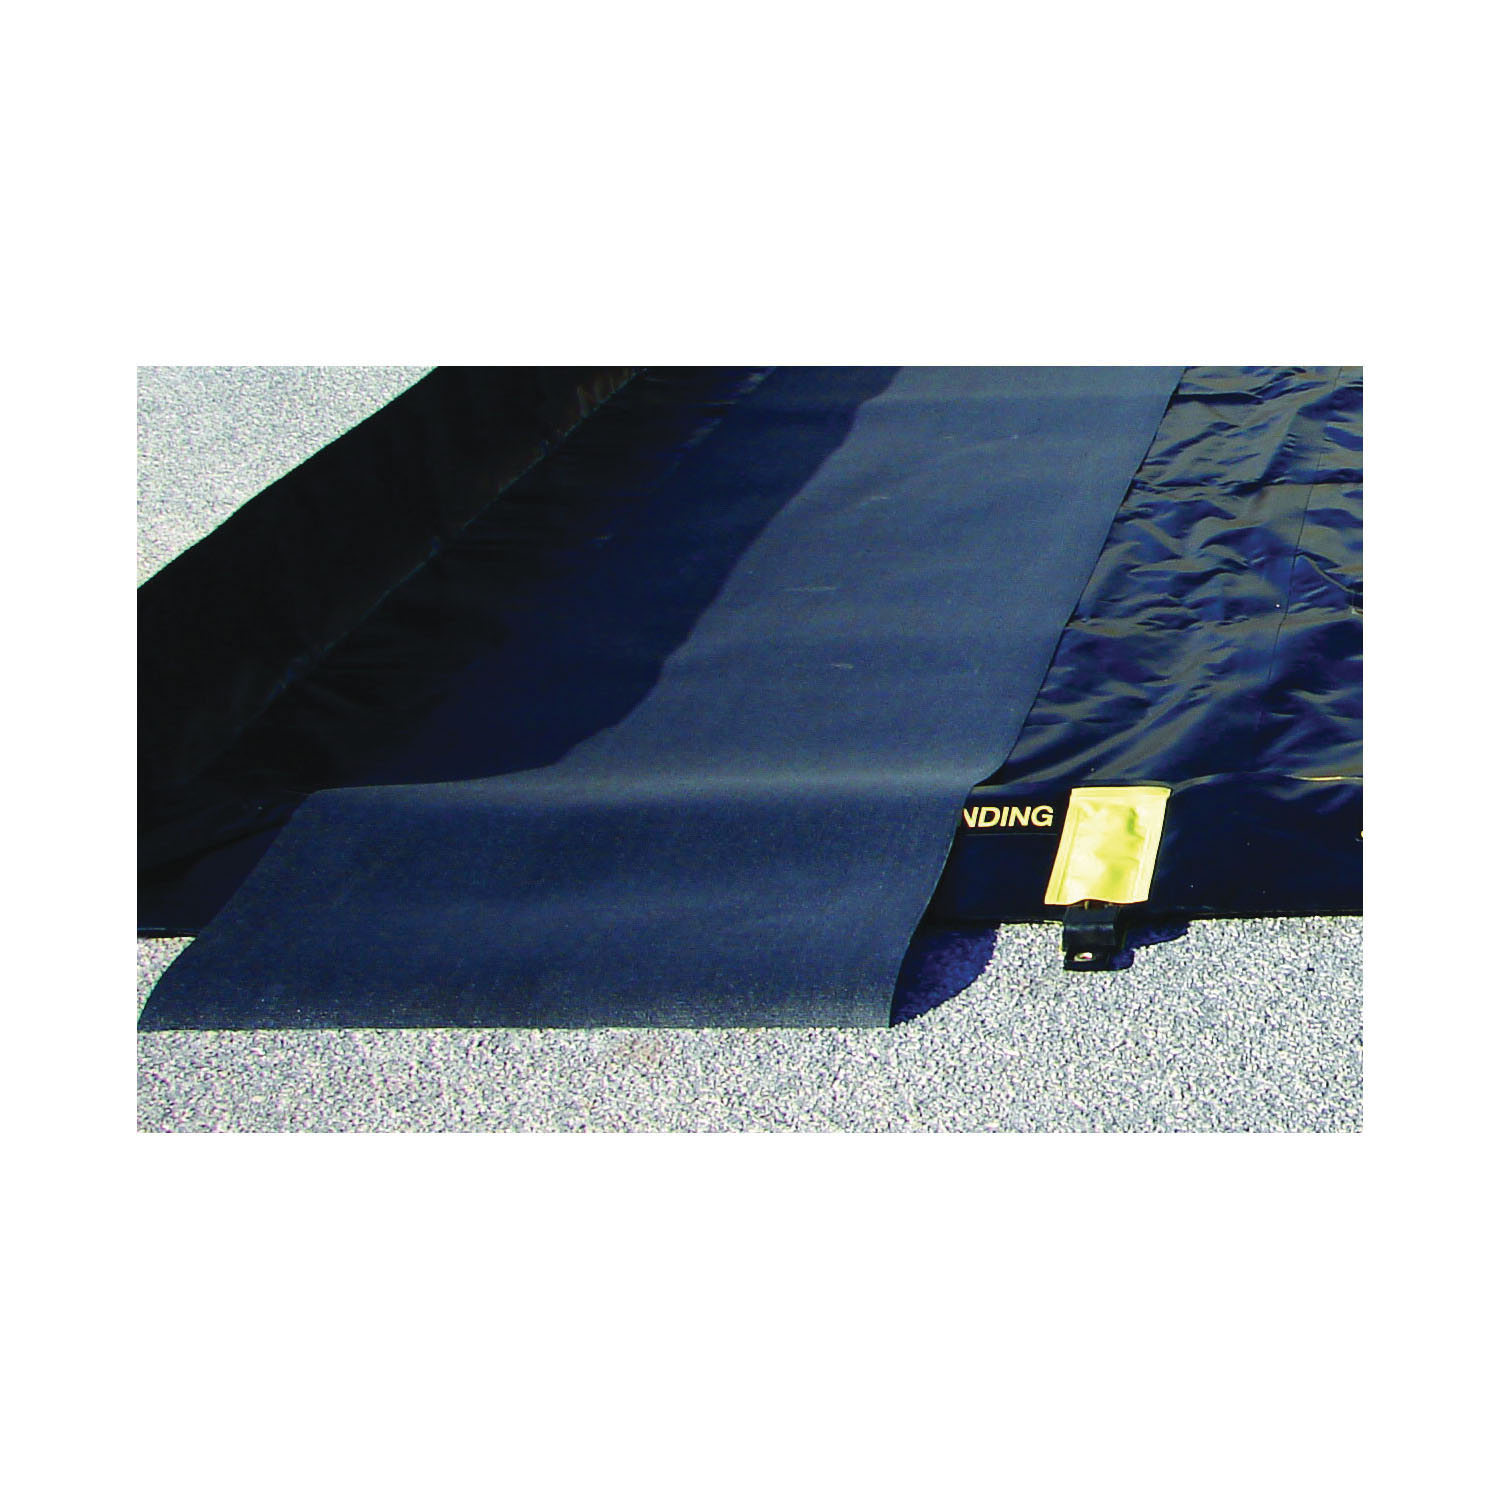 Justrite® 28336 Track Mat, 6 ft L x 3 ft W, PVC Coated Woven Fabric